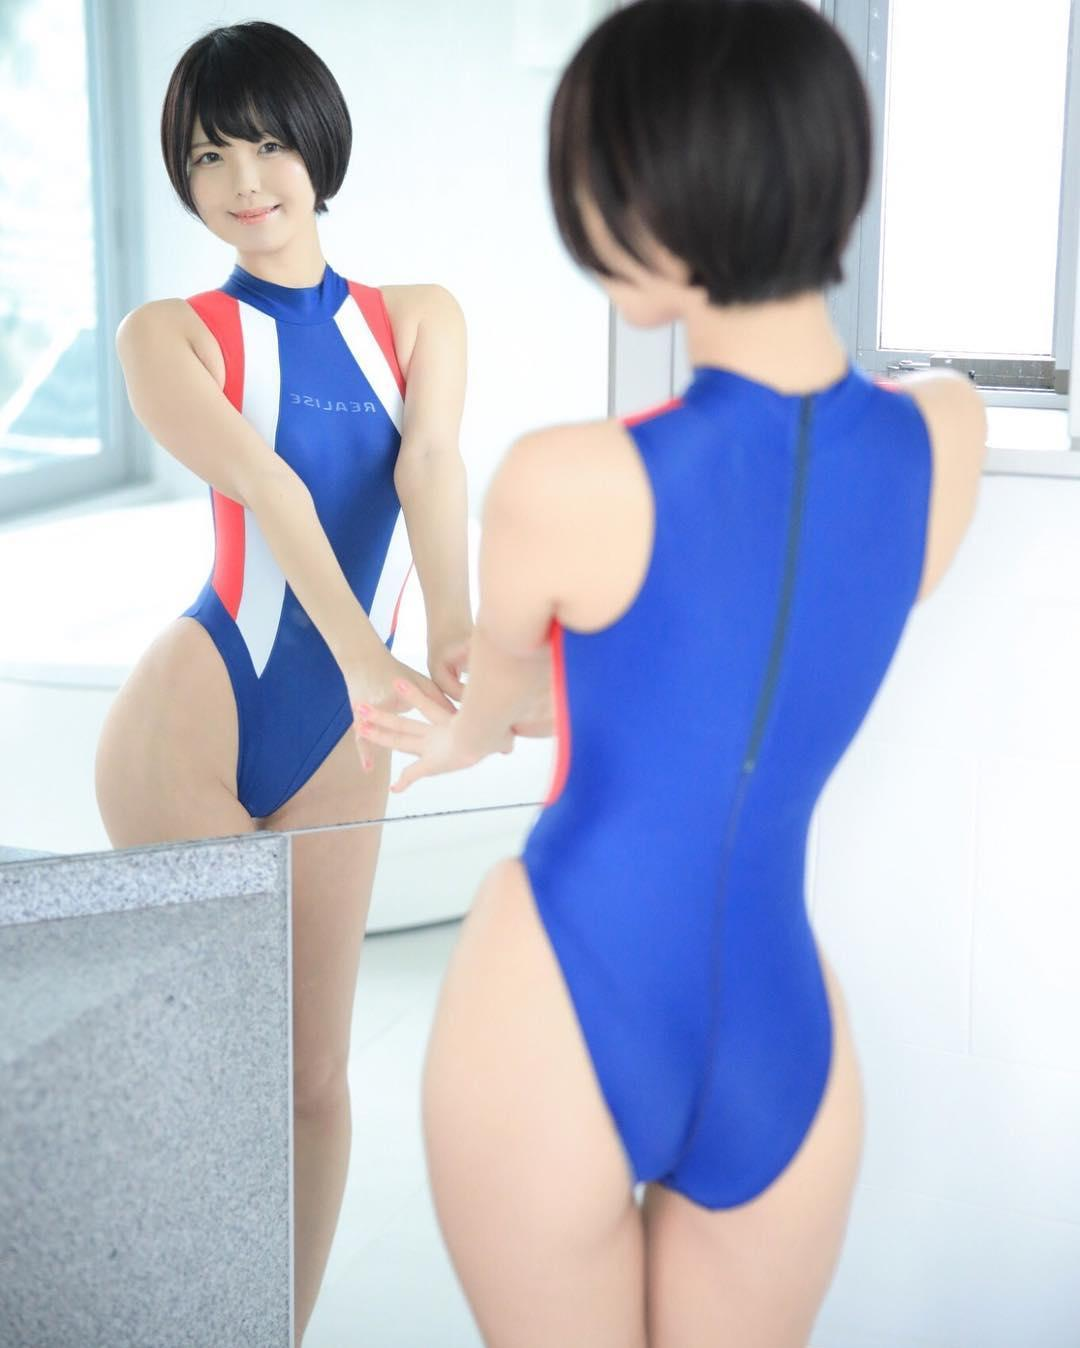 shy japanese cosplay model with some swimwear selfies  picture 10